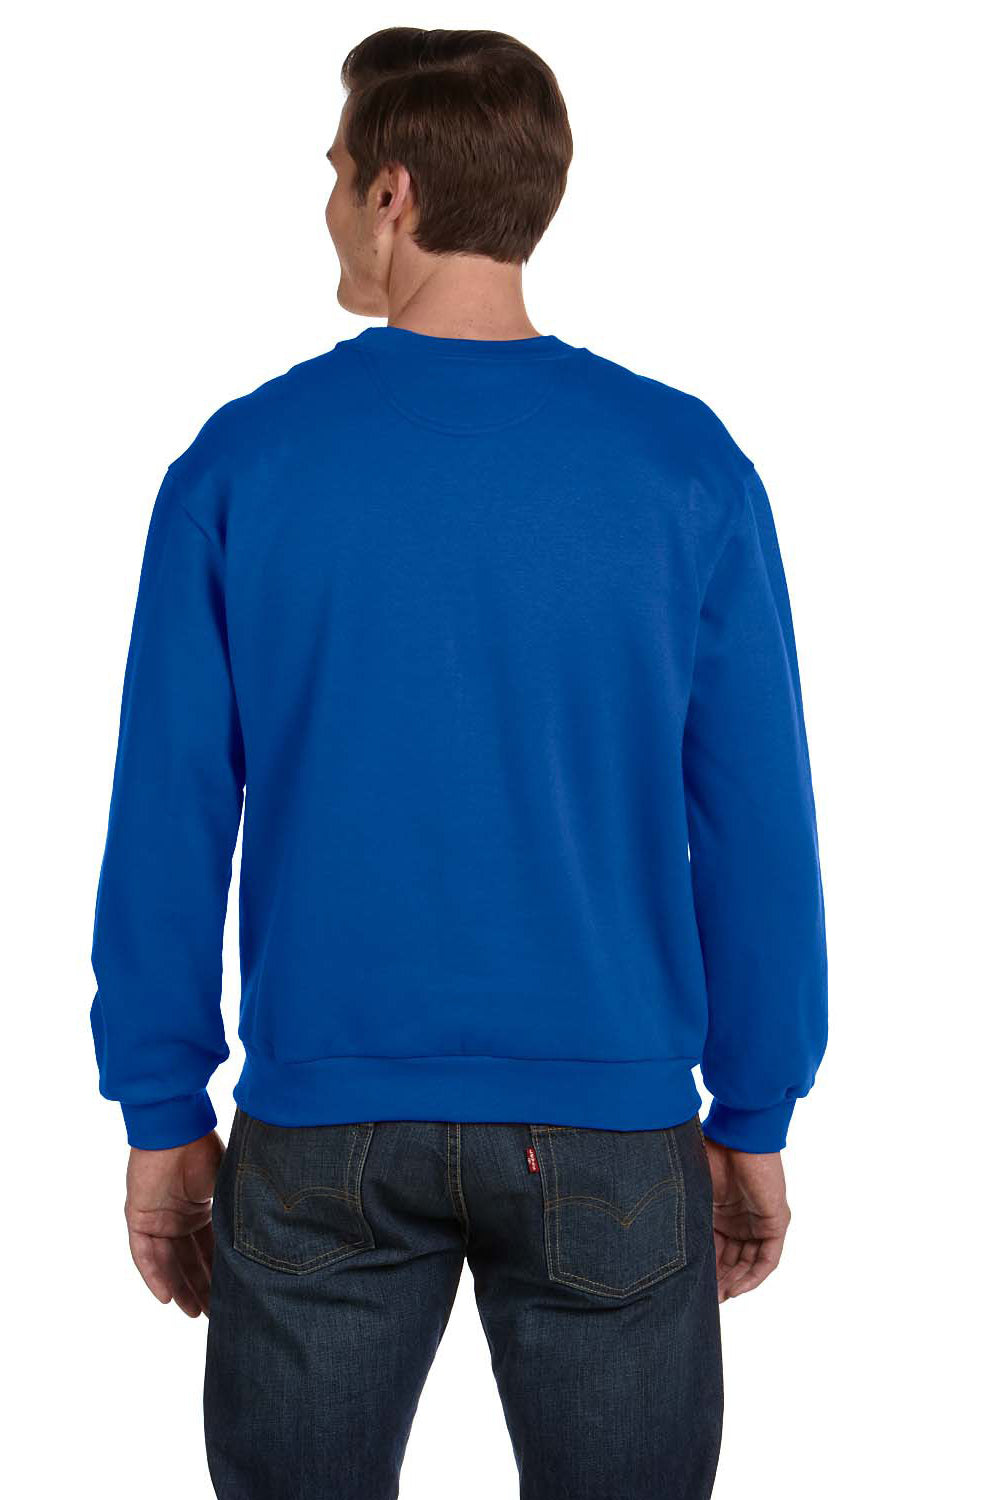 Anvil 71000 Mens Fleece Crewneck Sweatshirt Royal Blue Back